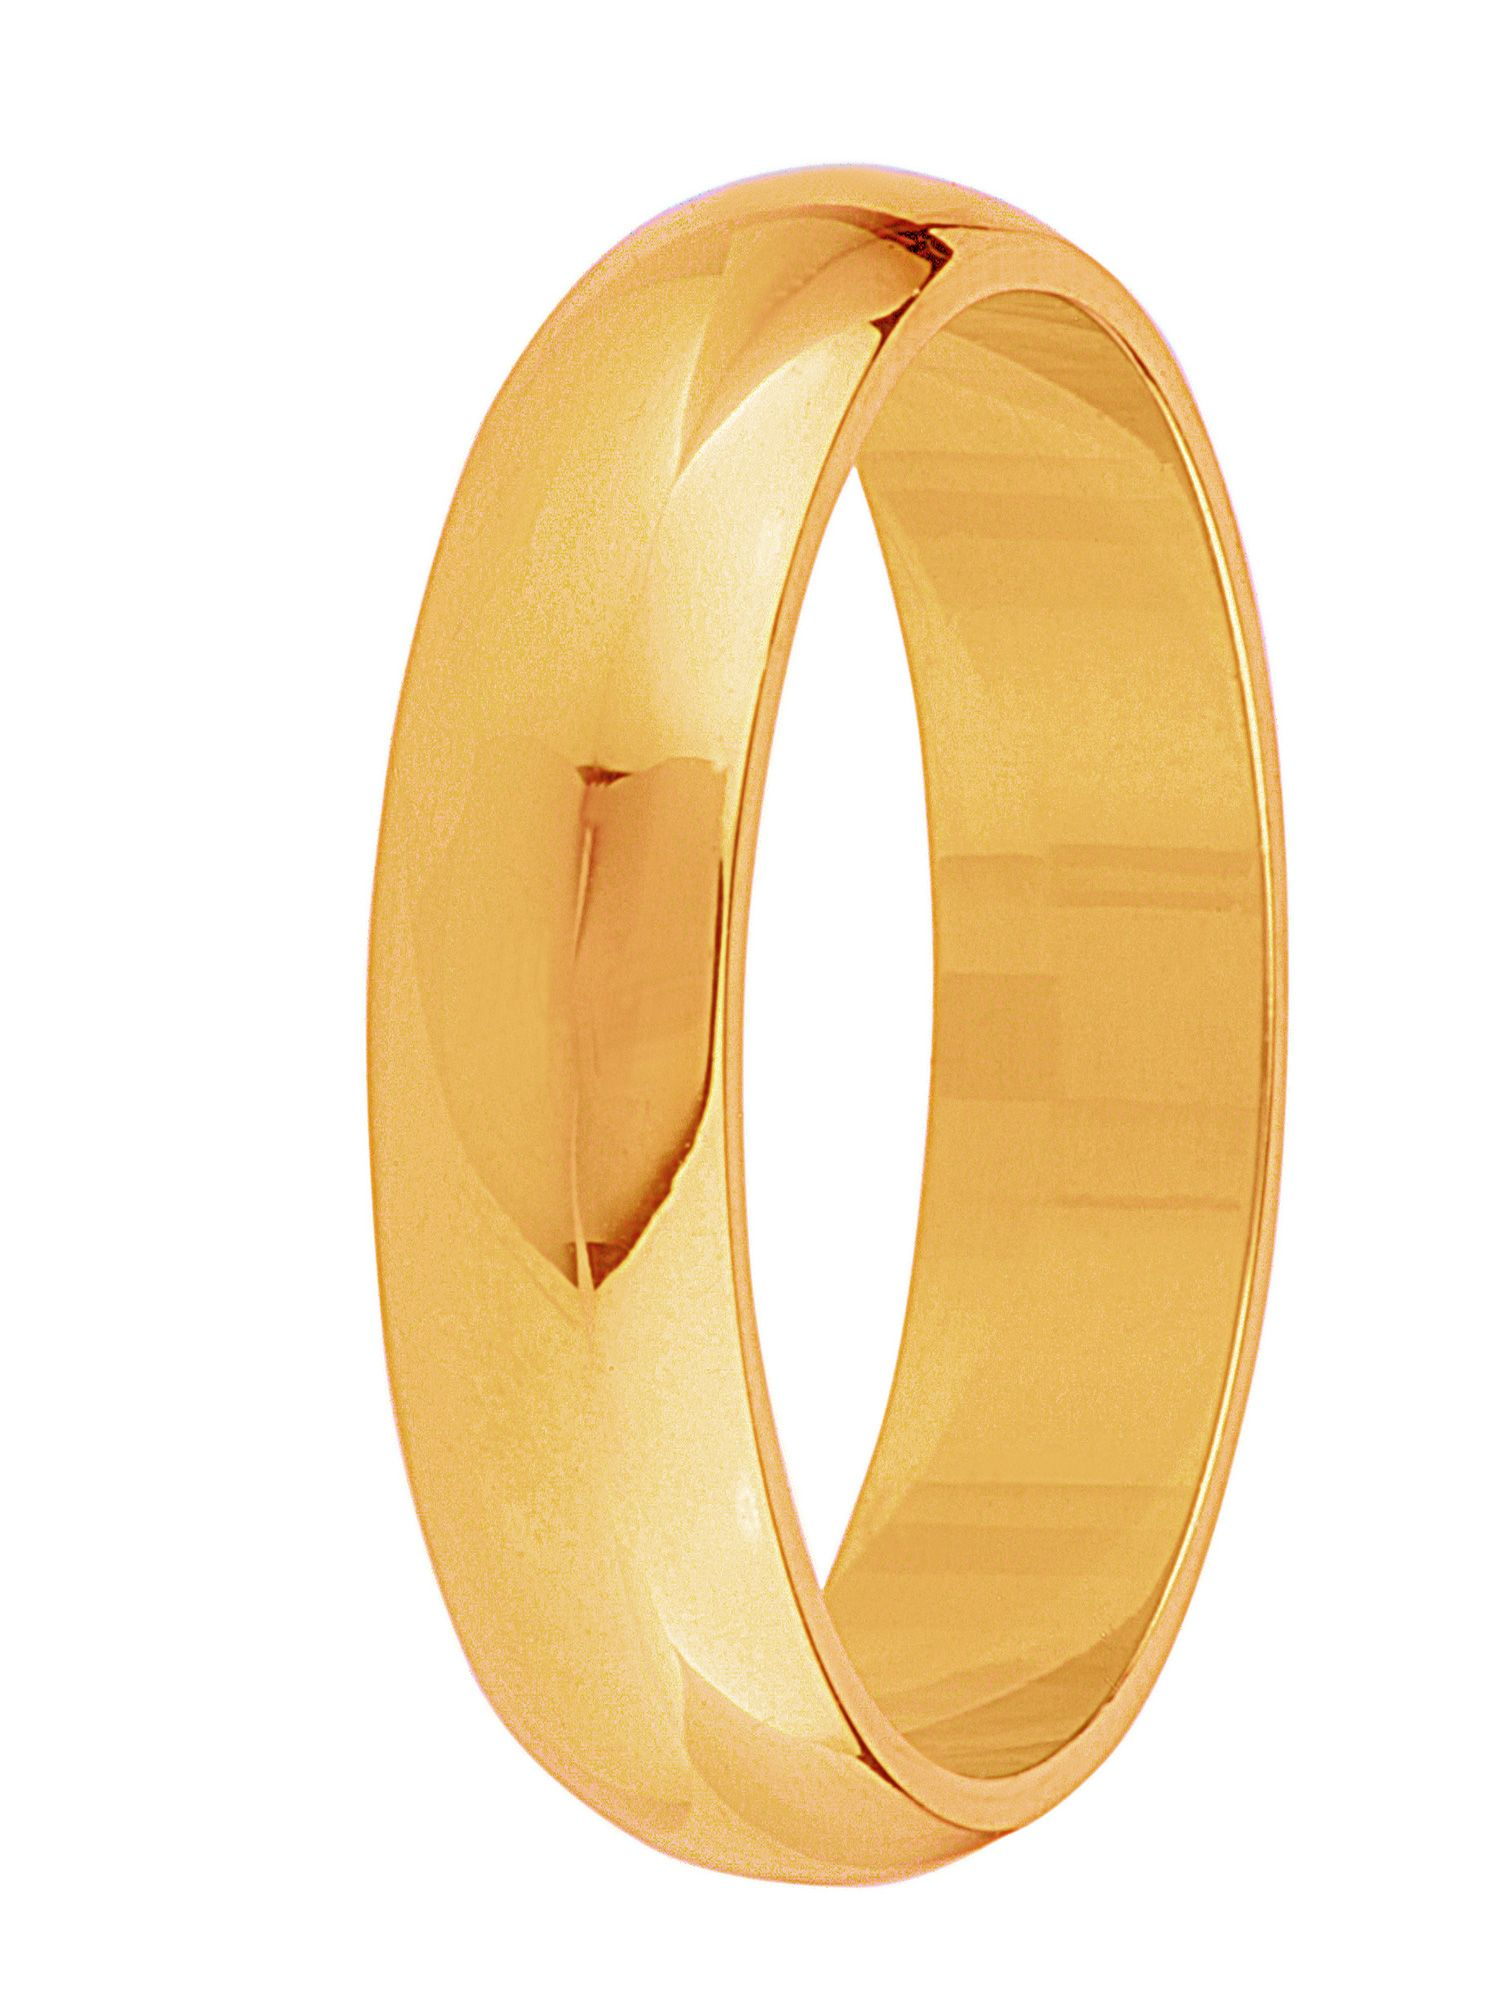 Grooms 18ct gold heavy court 6mm wedding ring - Gold